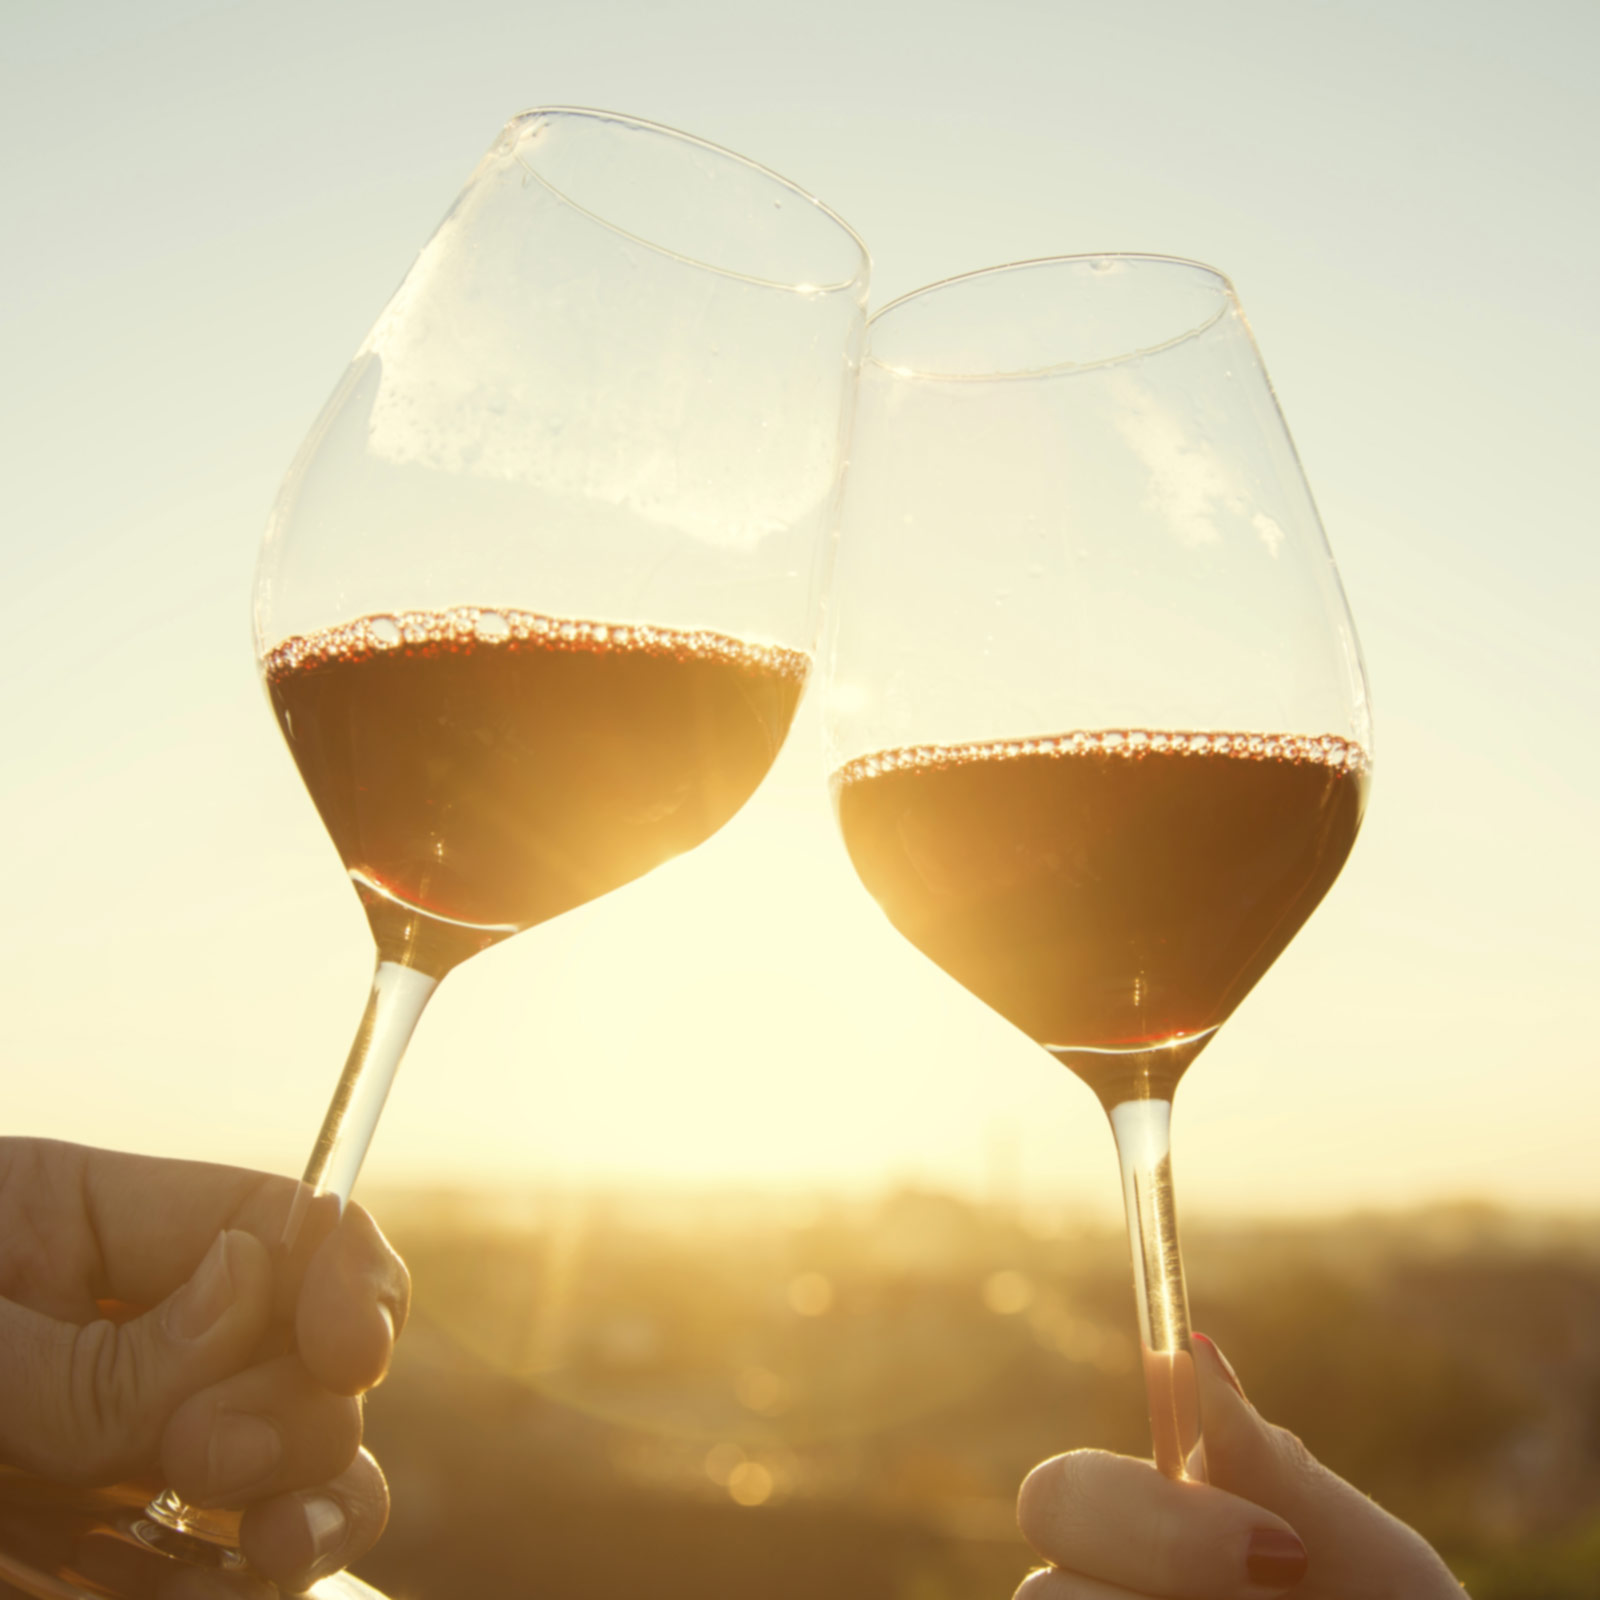 Bold Red Wine Cheers in Vineyard at Sunset